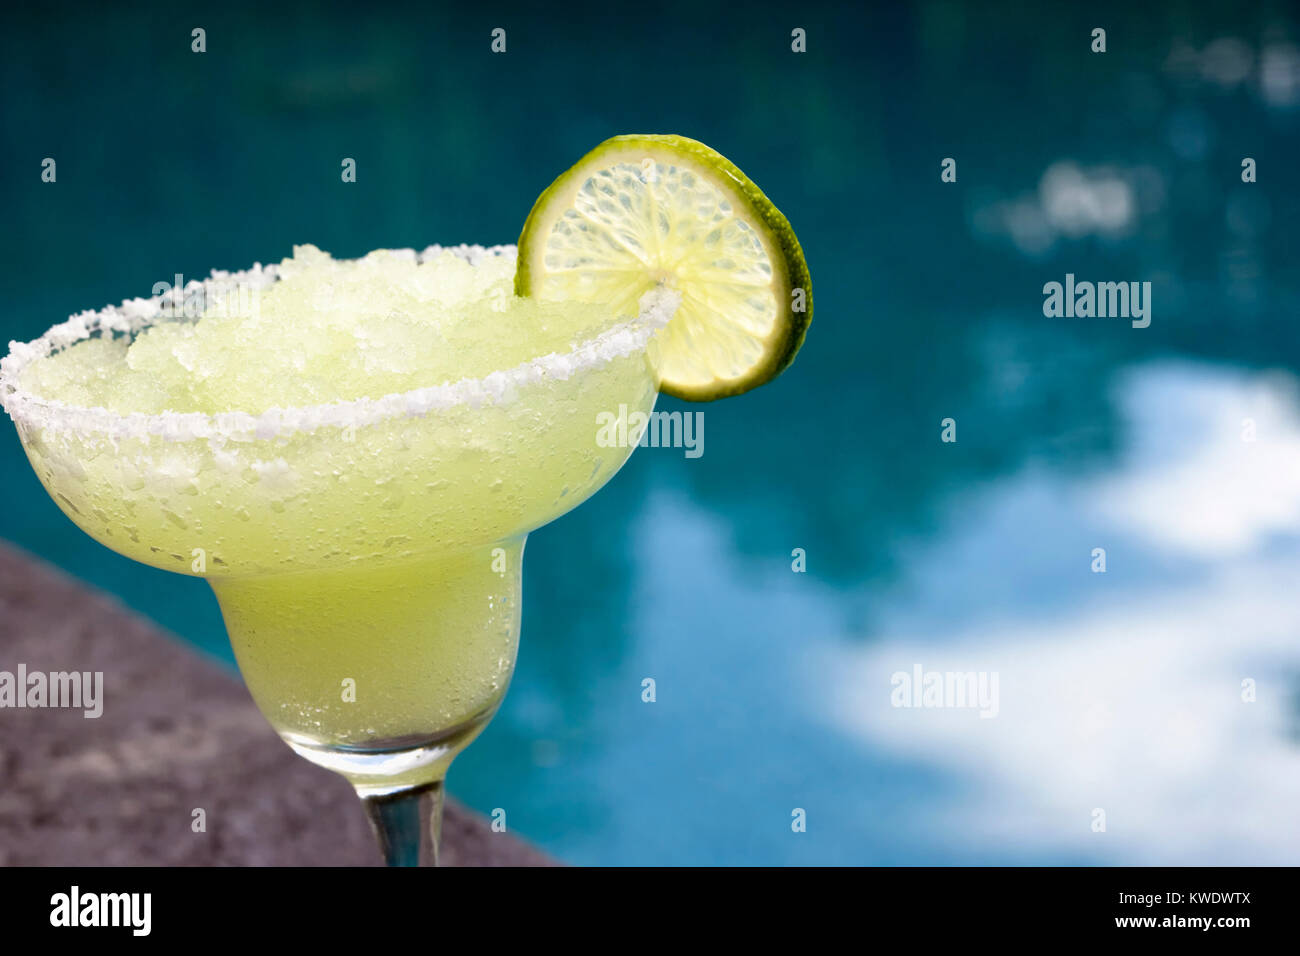 Frozen Marguerita with Garnish Poolside - Stock Image